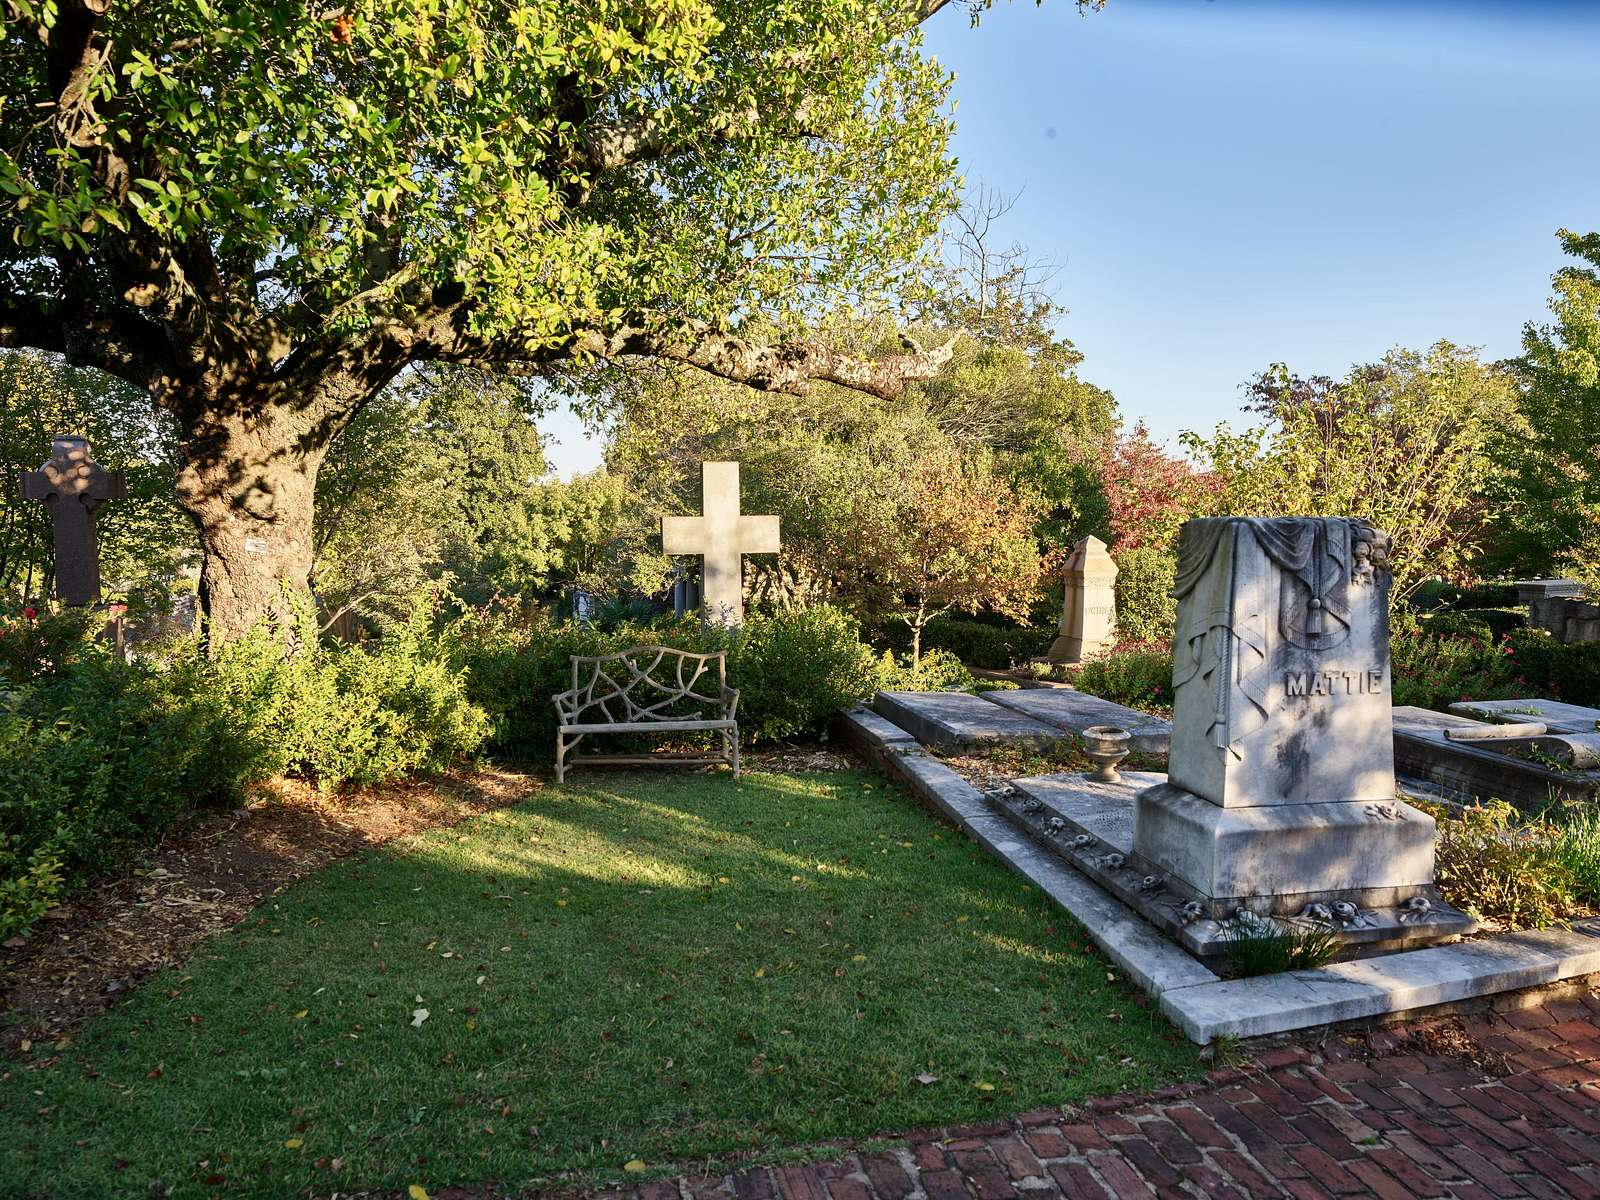 Gravesite at the historic Oakland Cemetery in Atlanta, the capital and largest city in the U.S. state of Georgia